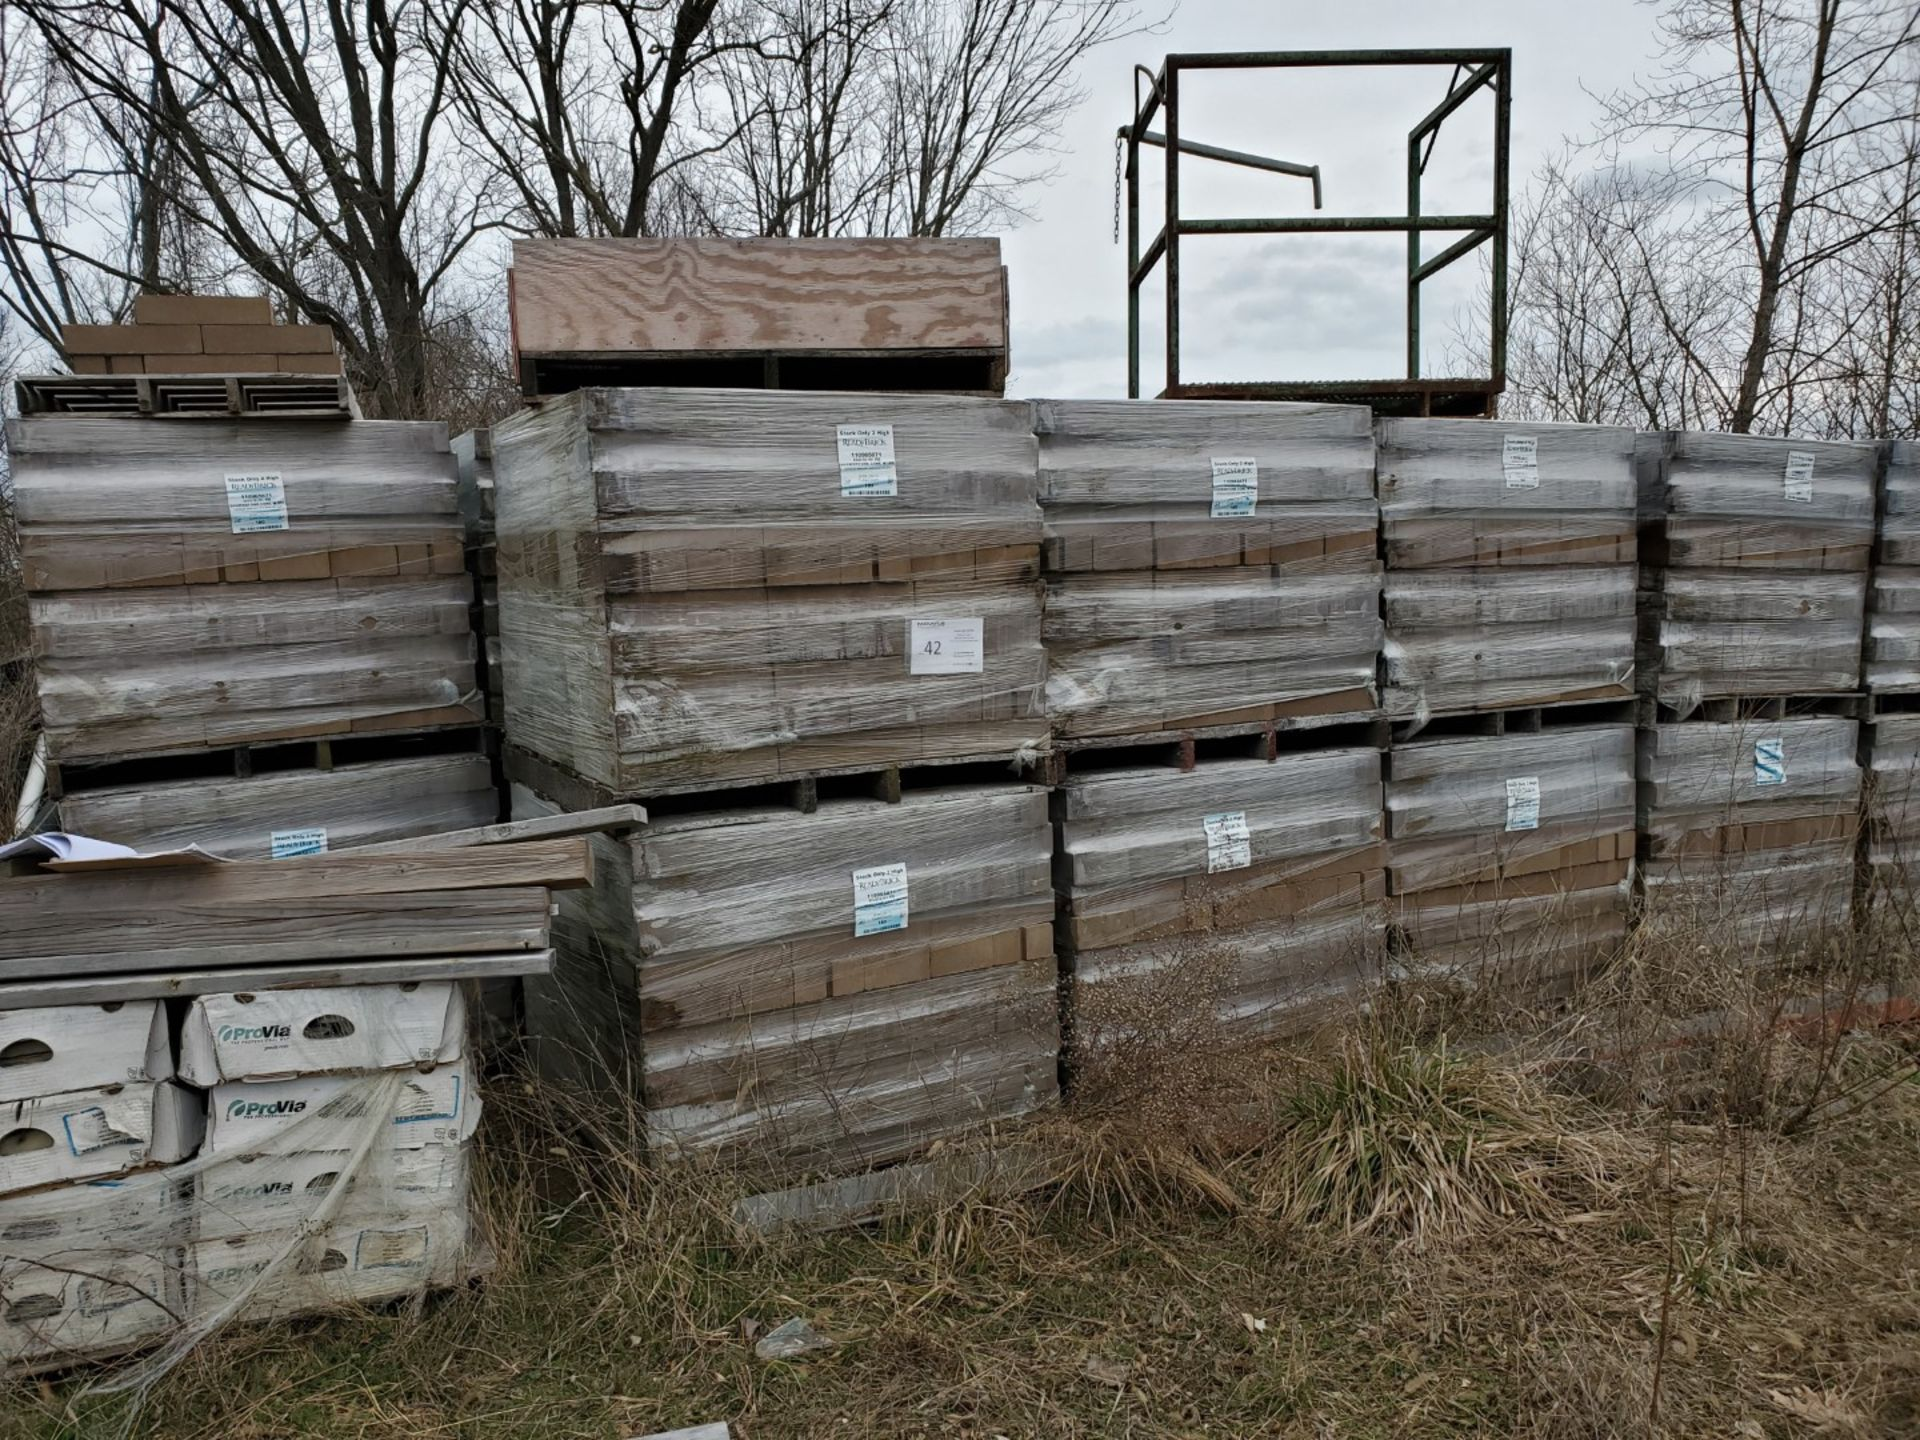 Lot 42 - (42) Skids ReadyBrick 8x4x16 HH RB, Brownstone Conc W/IWR 180 count per skid, Loading Fee $400